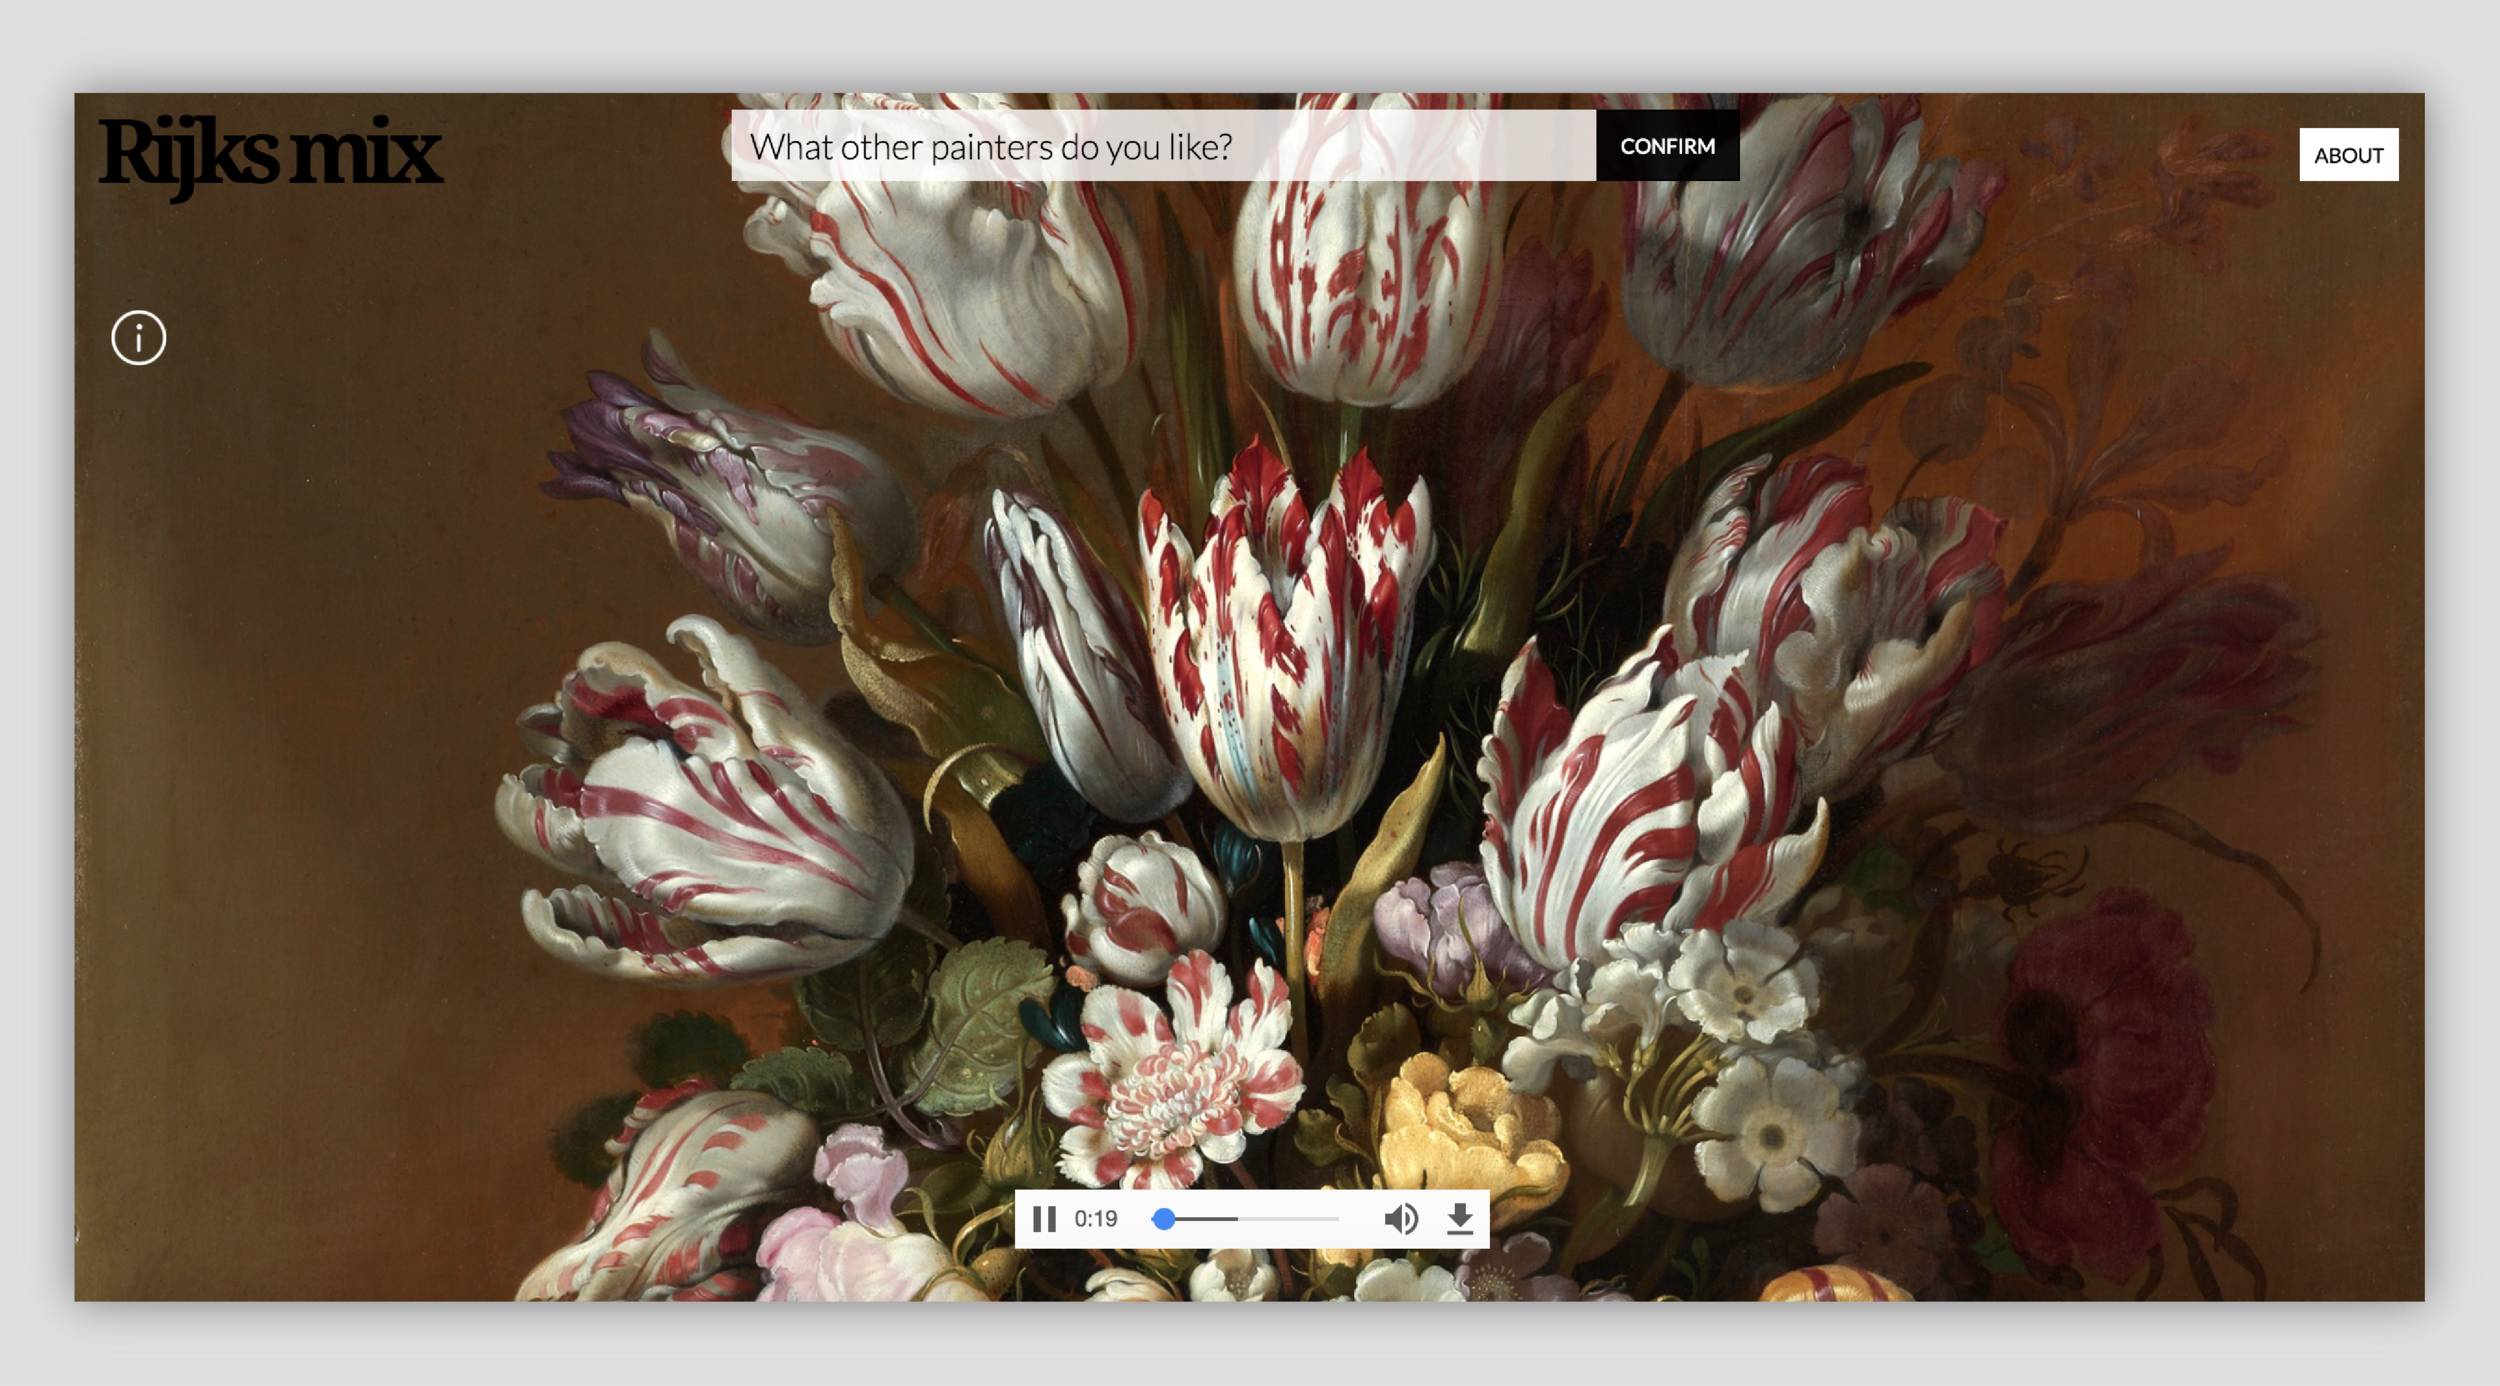 Upon a successful query, a full-screen image of a painting displayed in Rijksmuseum is matched with a song from Soundcloud. The search bar moves to the top so as not to detract attention from the artwork.